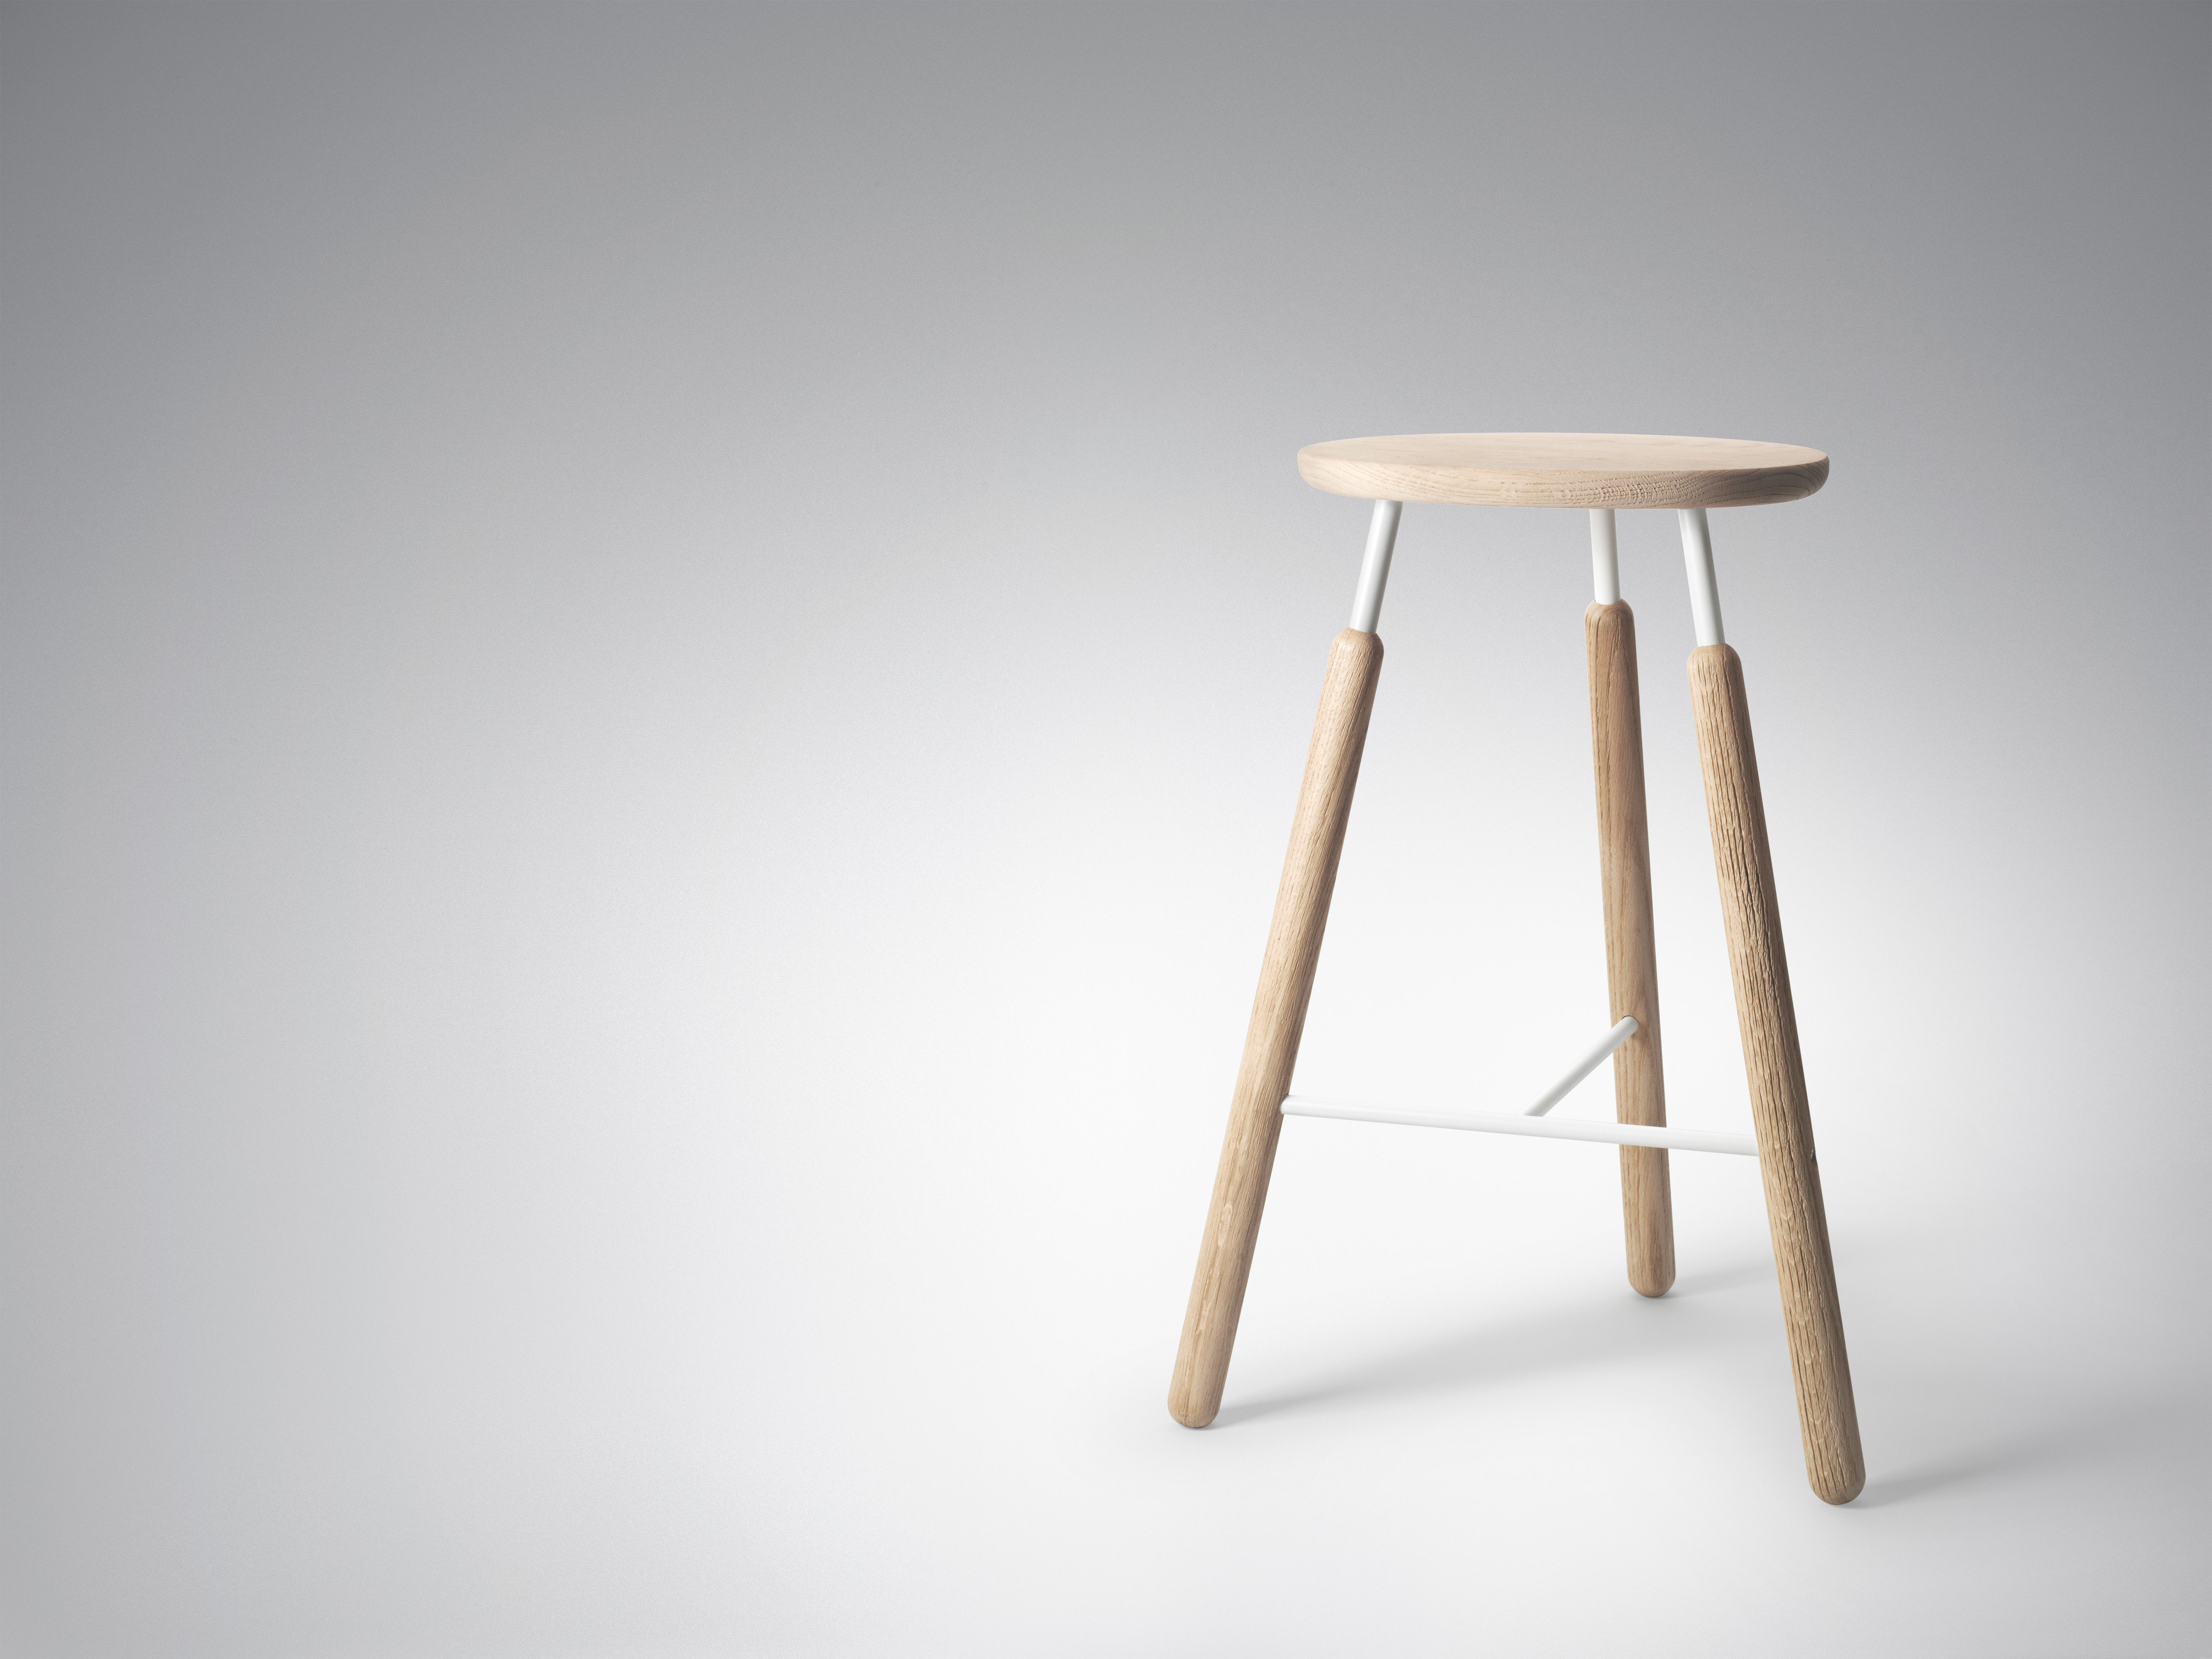 Very Impressive portraiture of Home > Furniture > Bar stools > Raft Bar stool Wood & metal  with #8A6841 color and 5400x4050 pixels